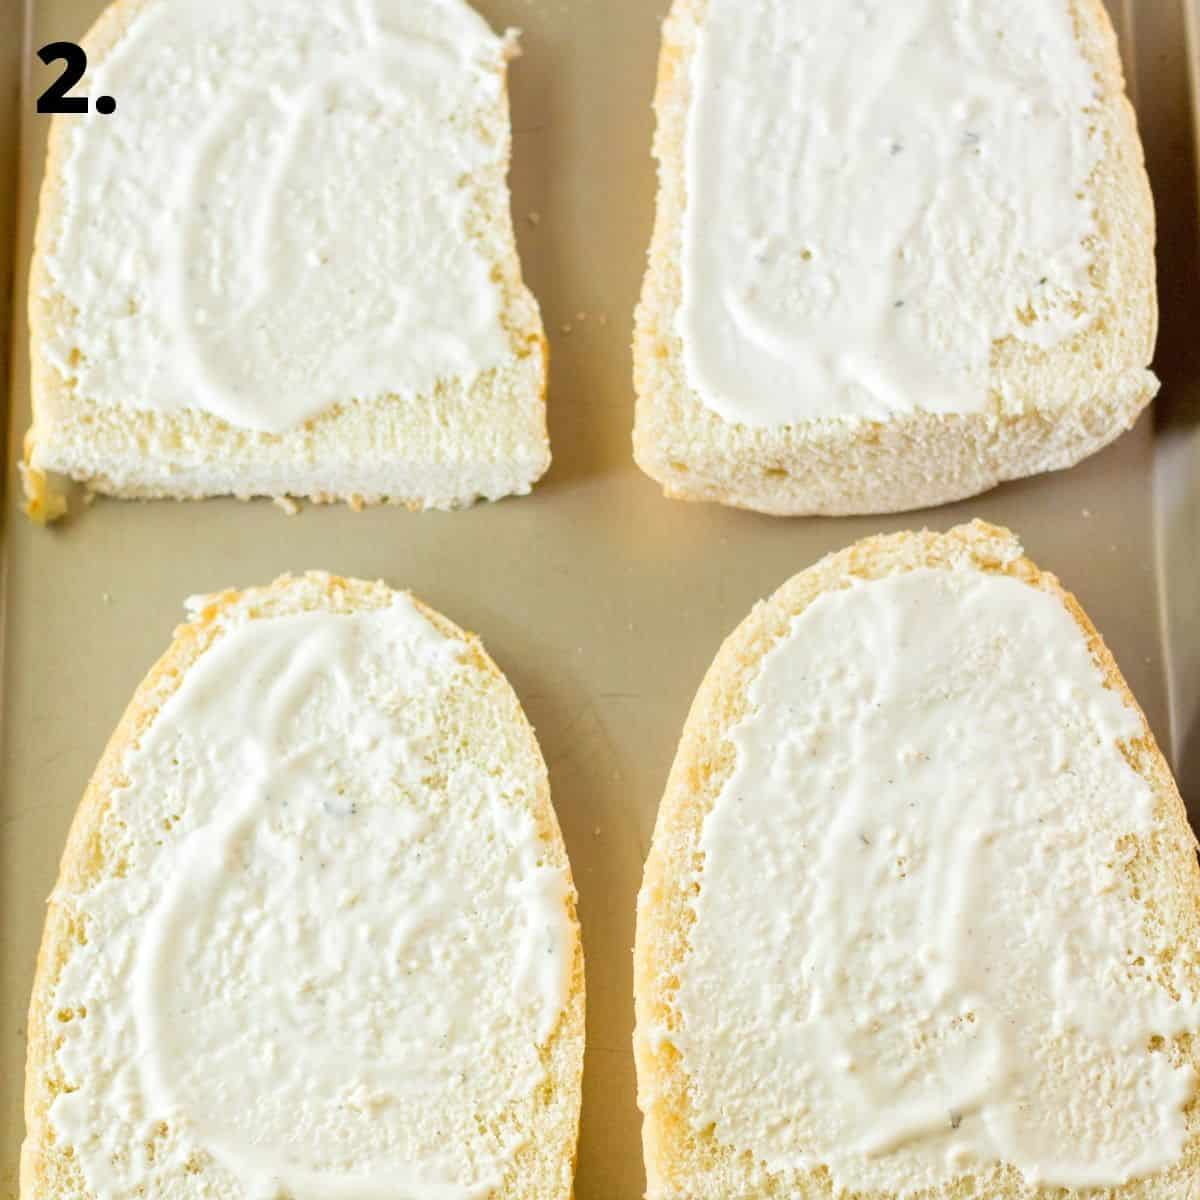 Four pieces of sliced french bread with ranch dressing on the bread.